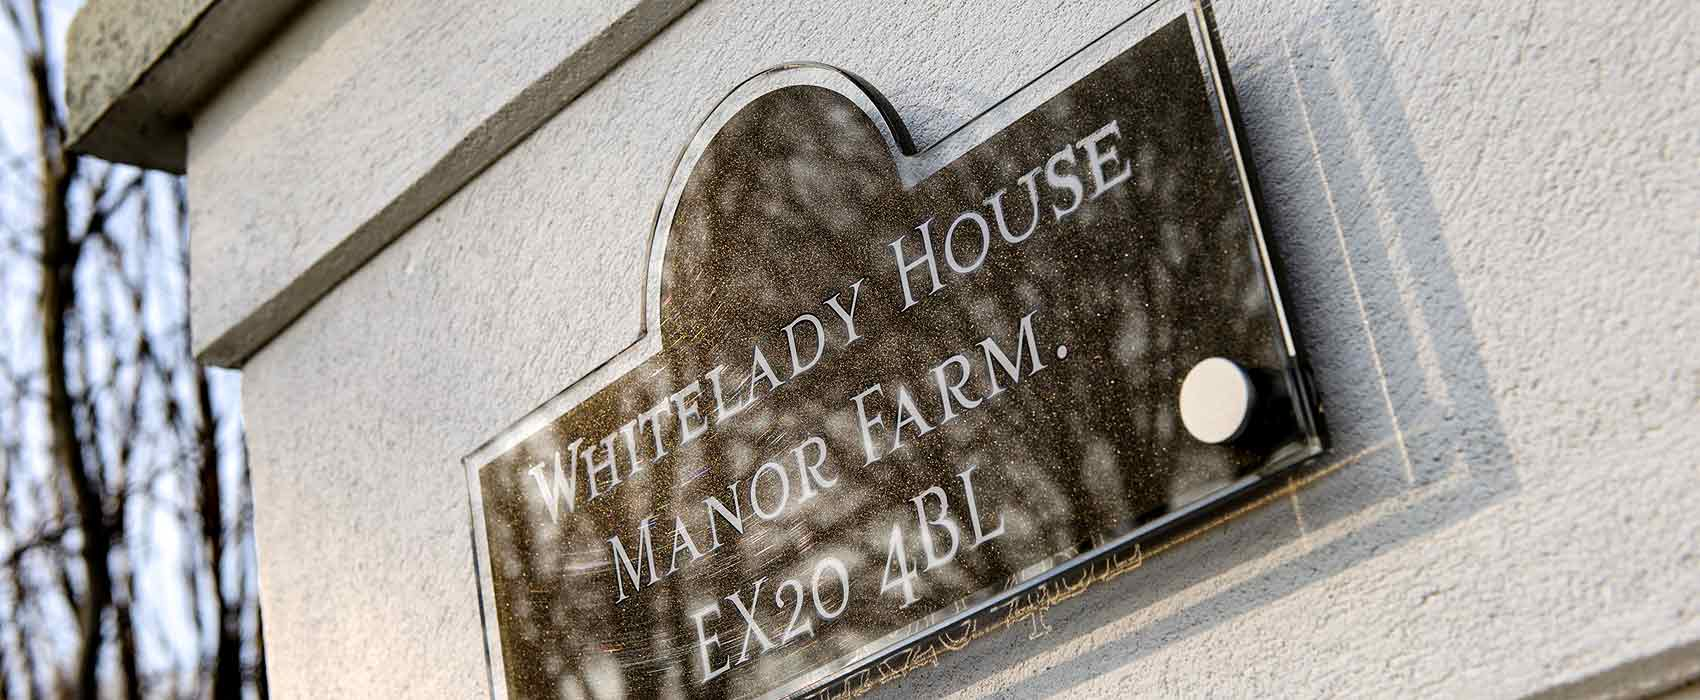 Whitelady sign on gatepost